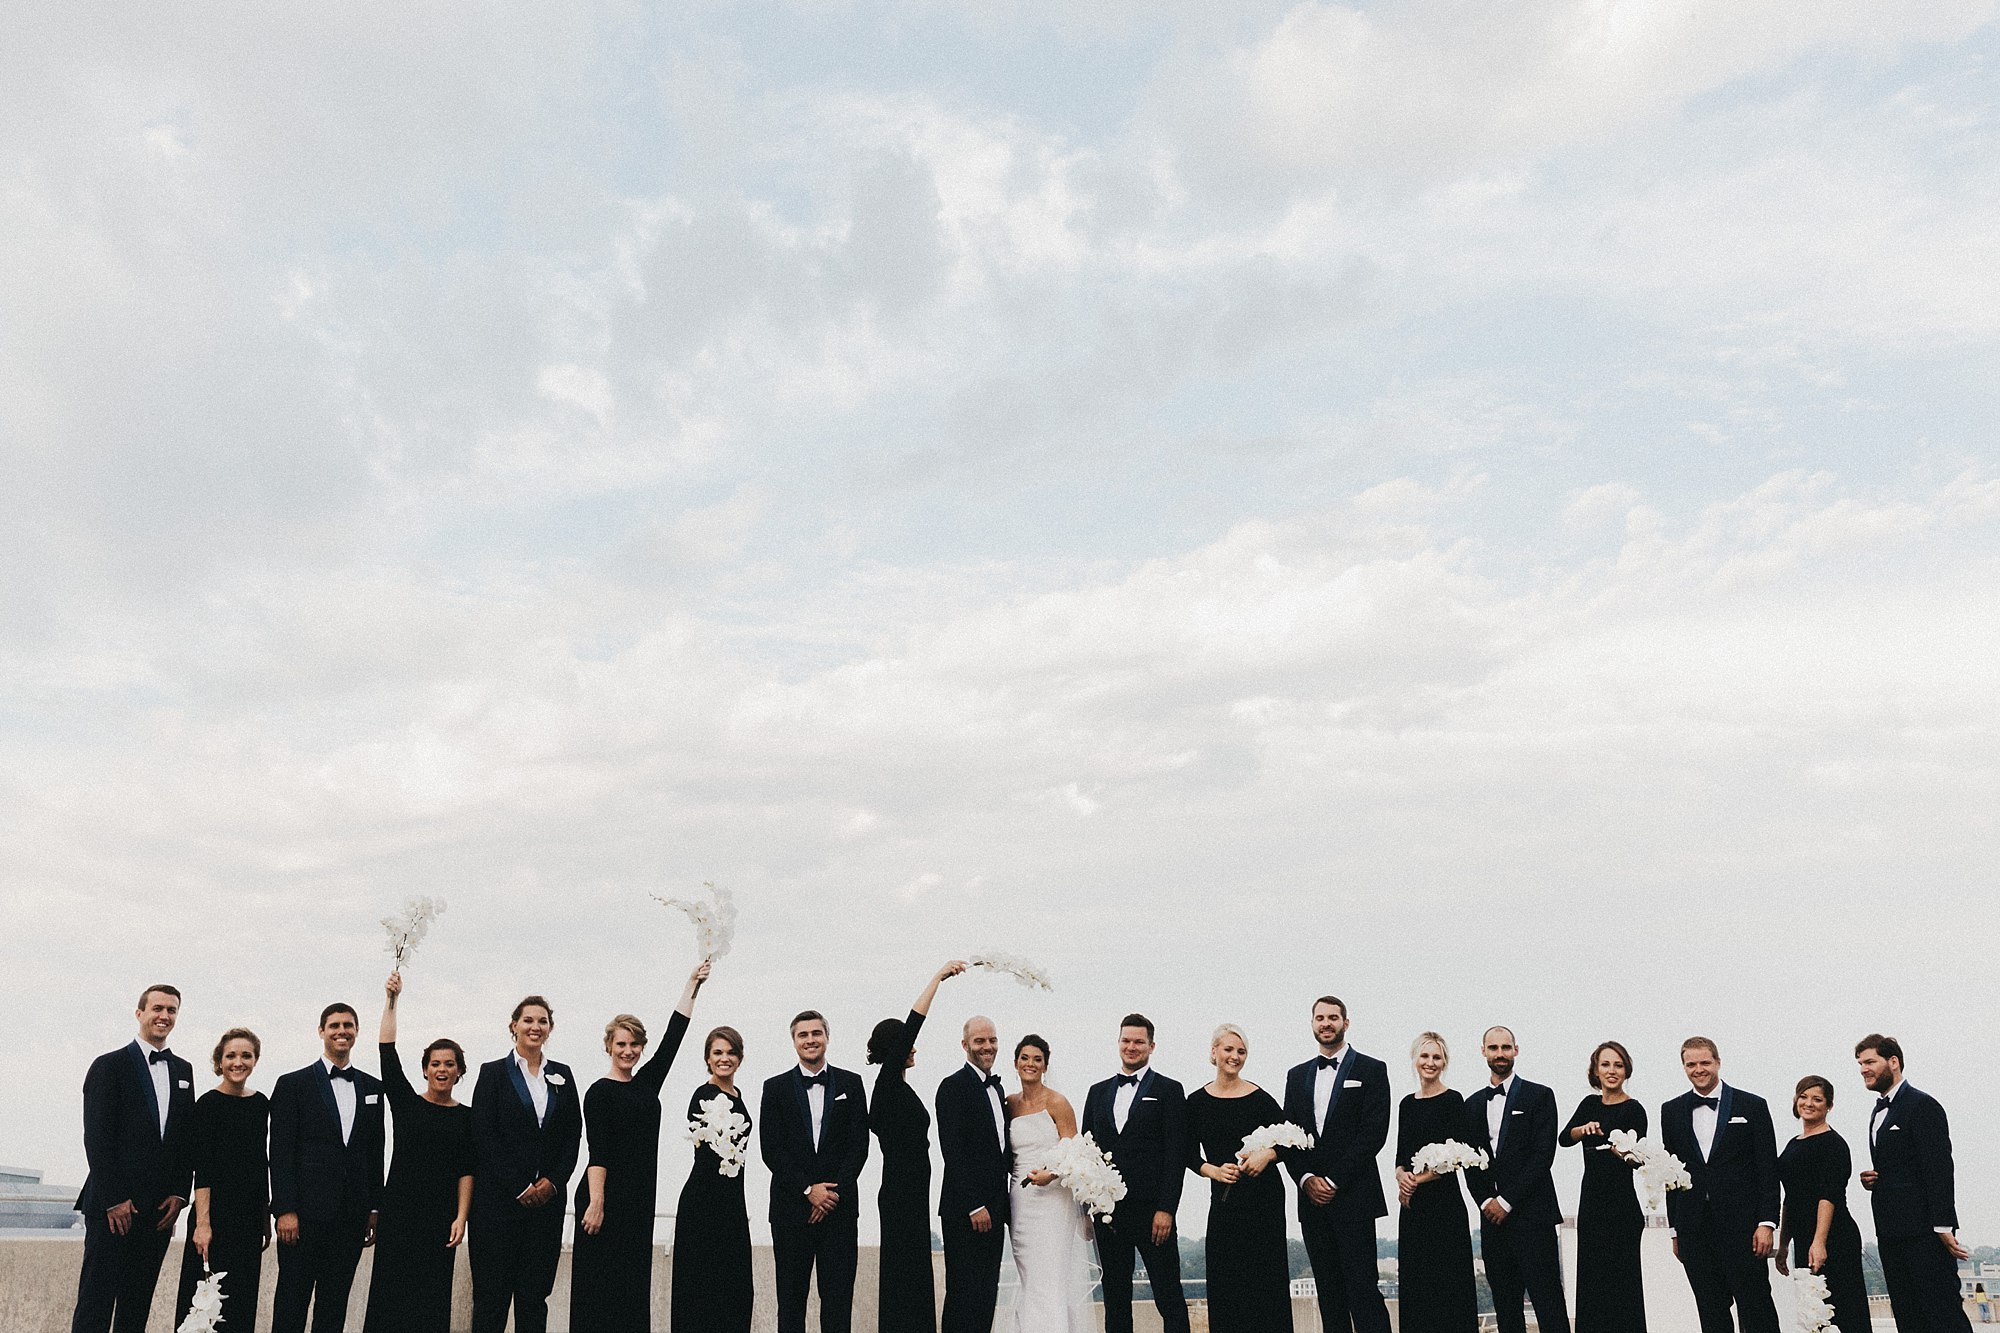 Sarah and Luke's Modern Iowa Wedding at Cowles Commons in Des Moines